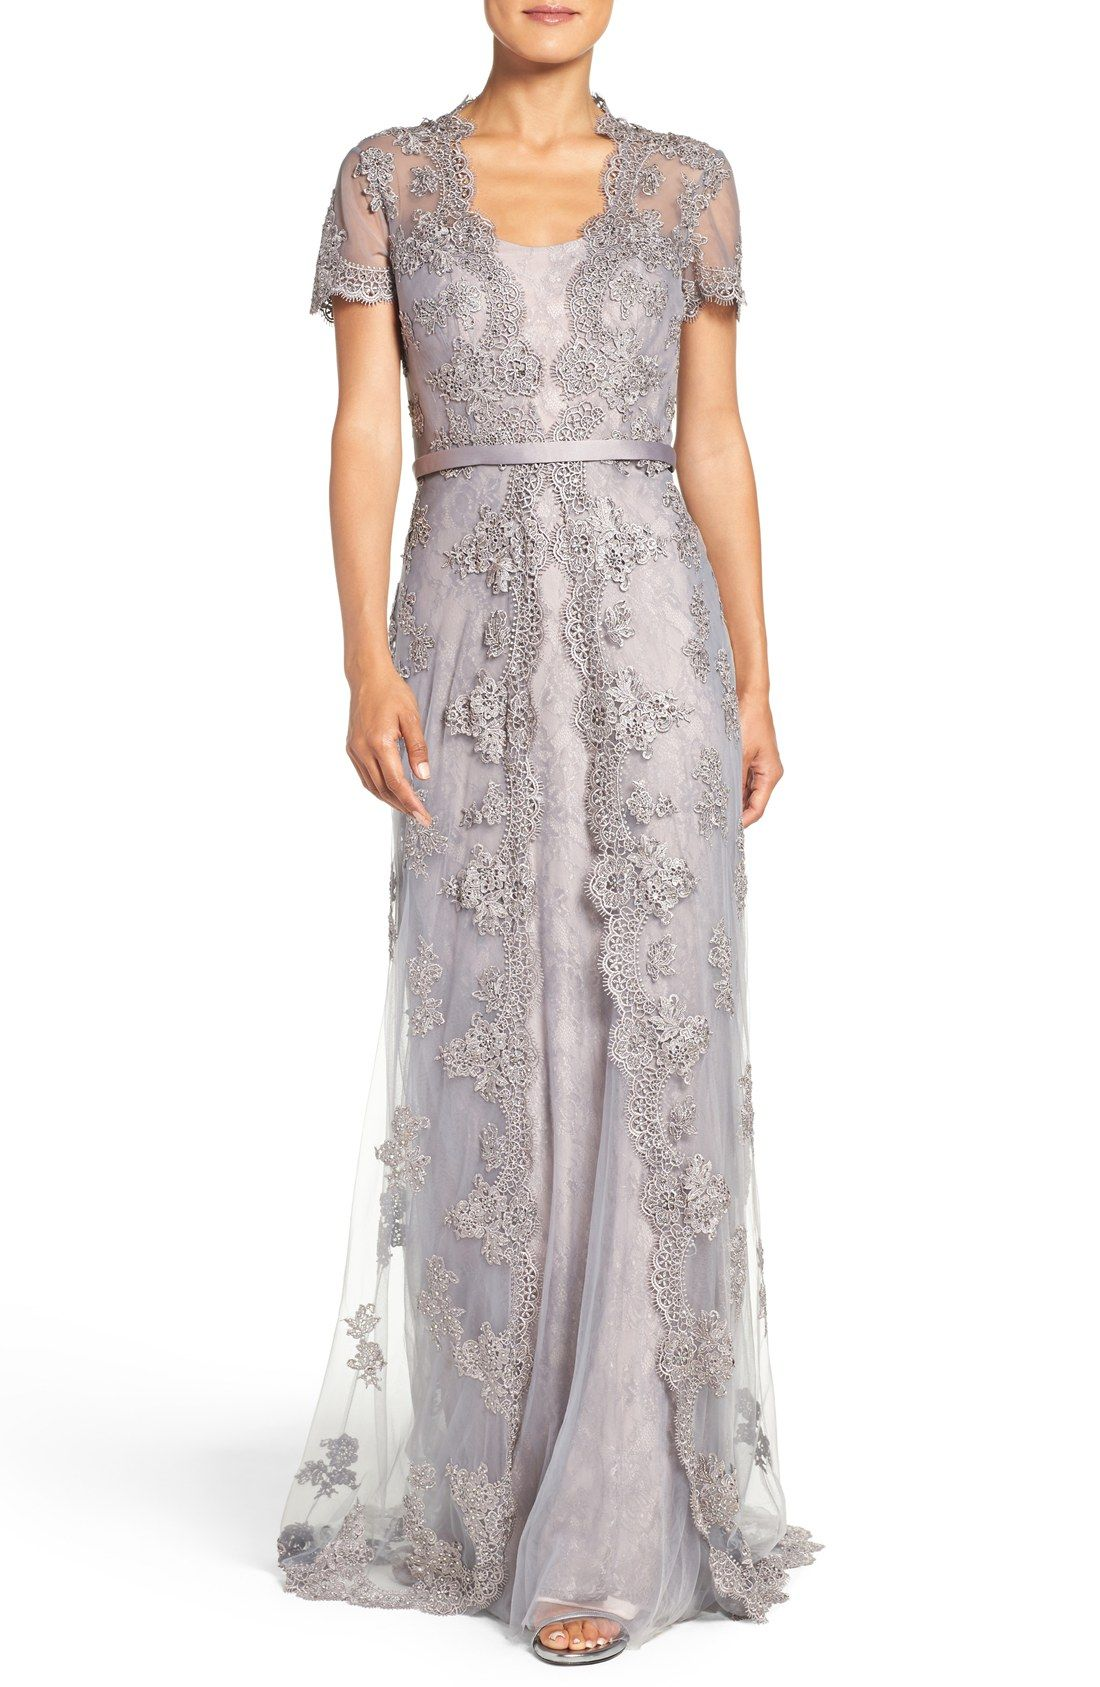 Silver Or Gray Mother Of The Bride Dresses Dresses For The Mother Of The Bride And Long Evening Gowns Mother Of Groom Dresses Mother Of The Bride Dresses Long